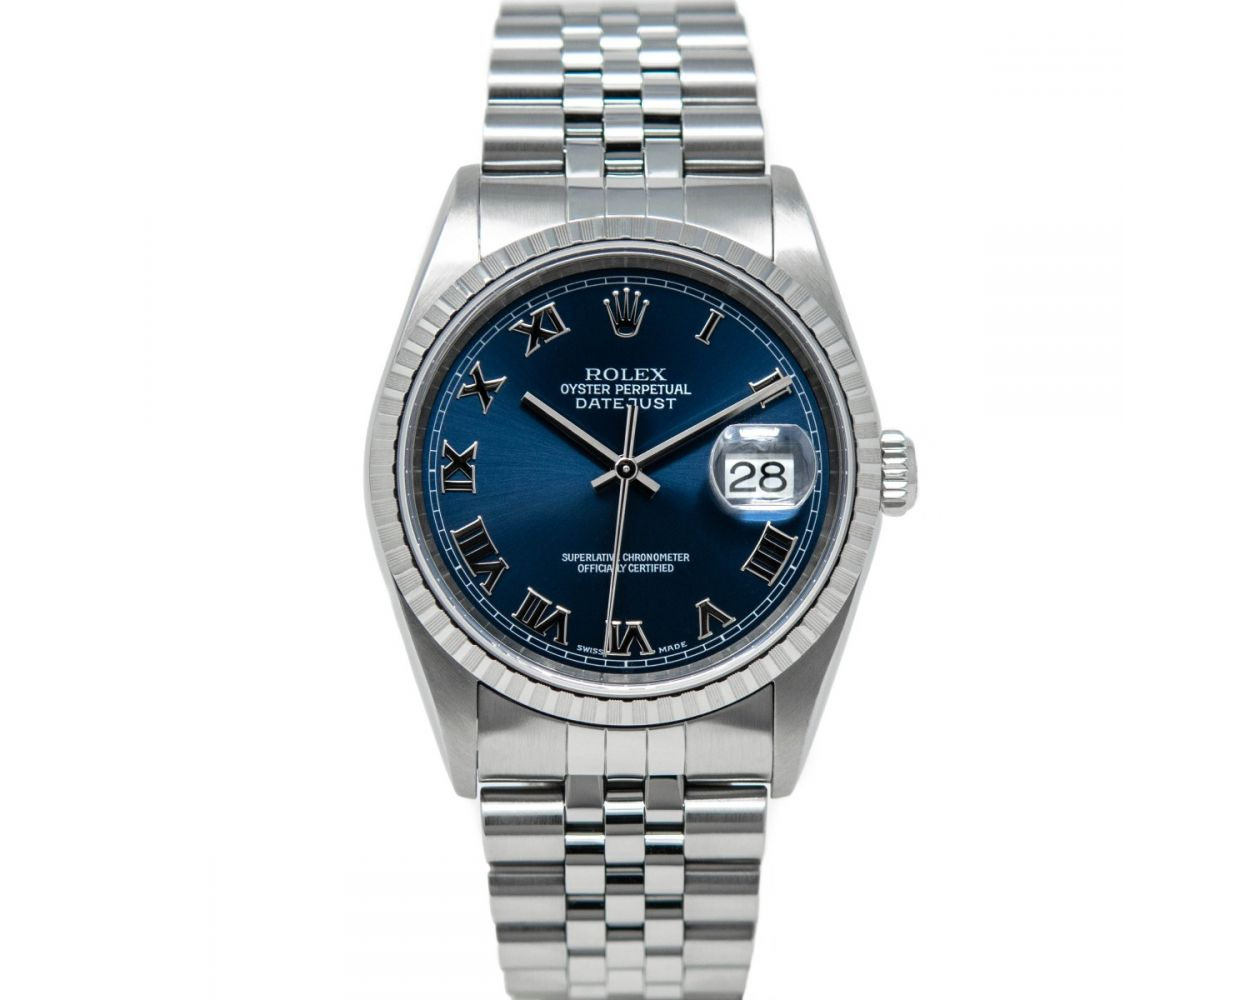 Rolex Datejust 36 16220 Wristwatch